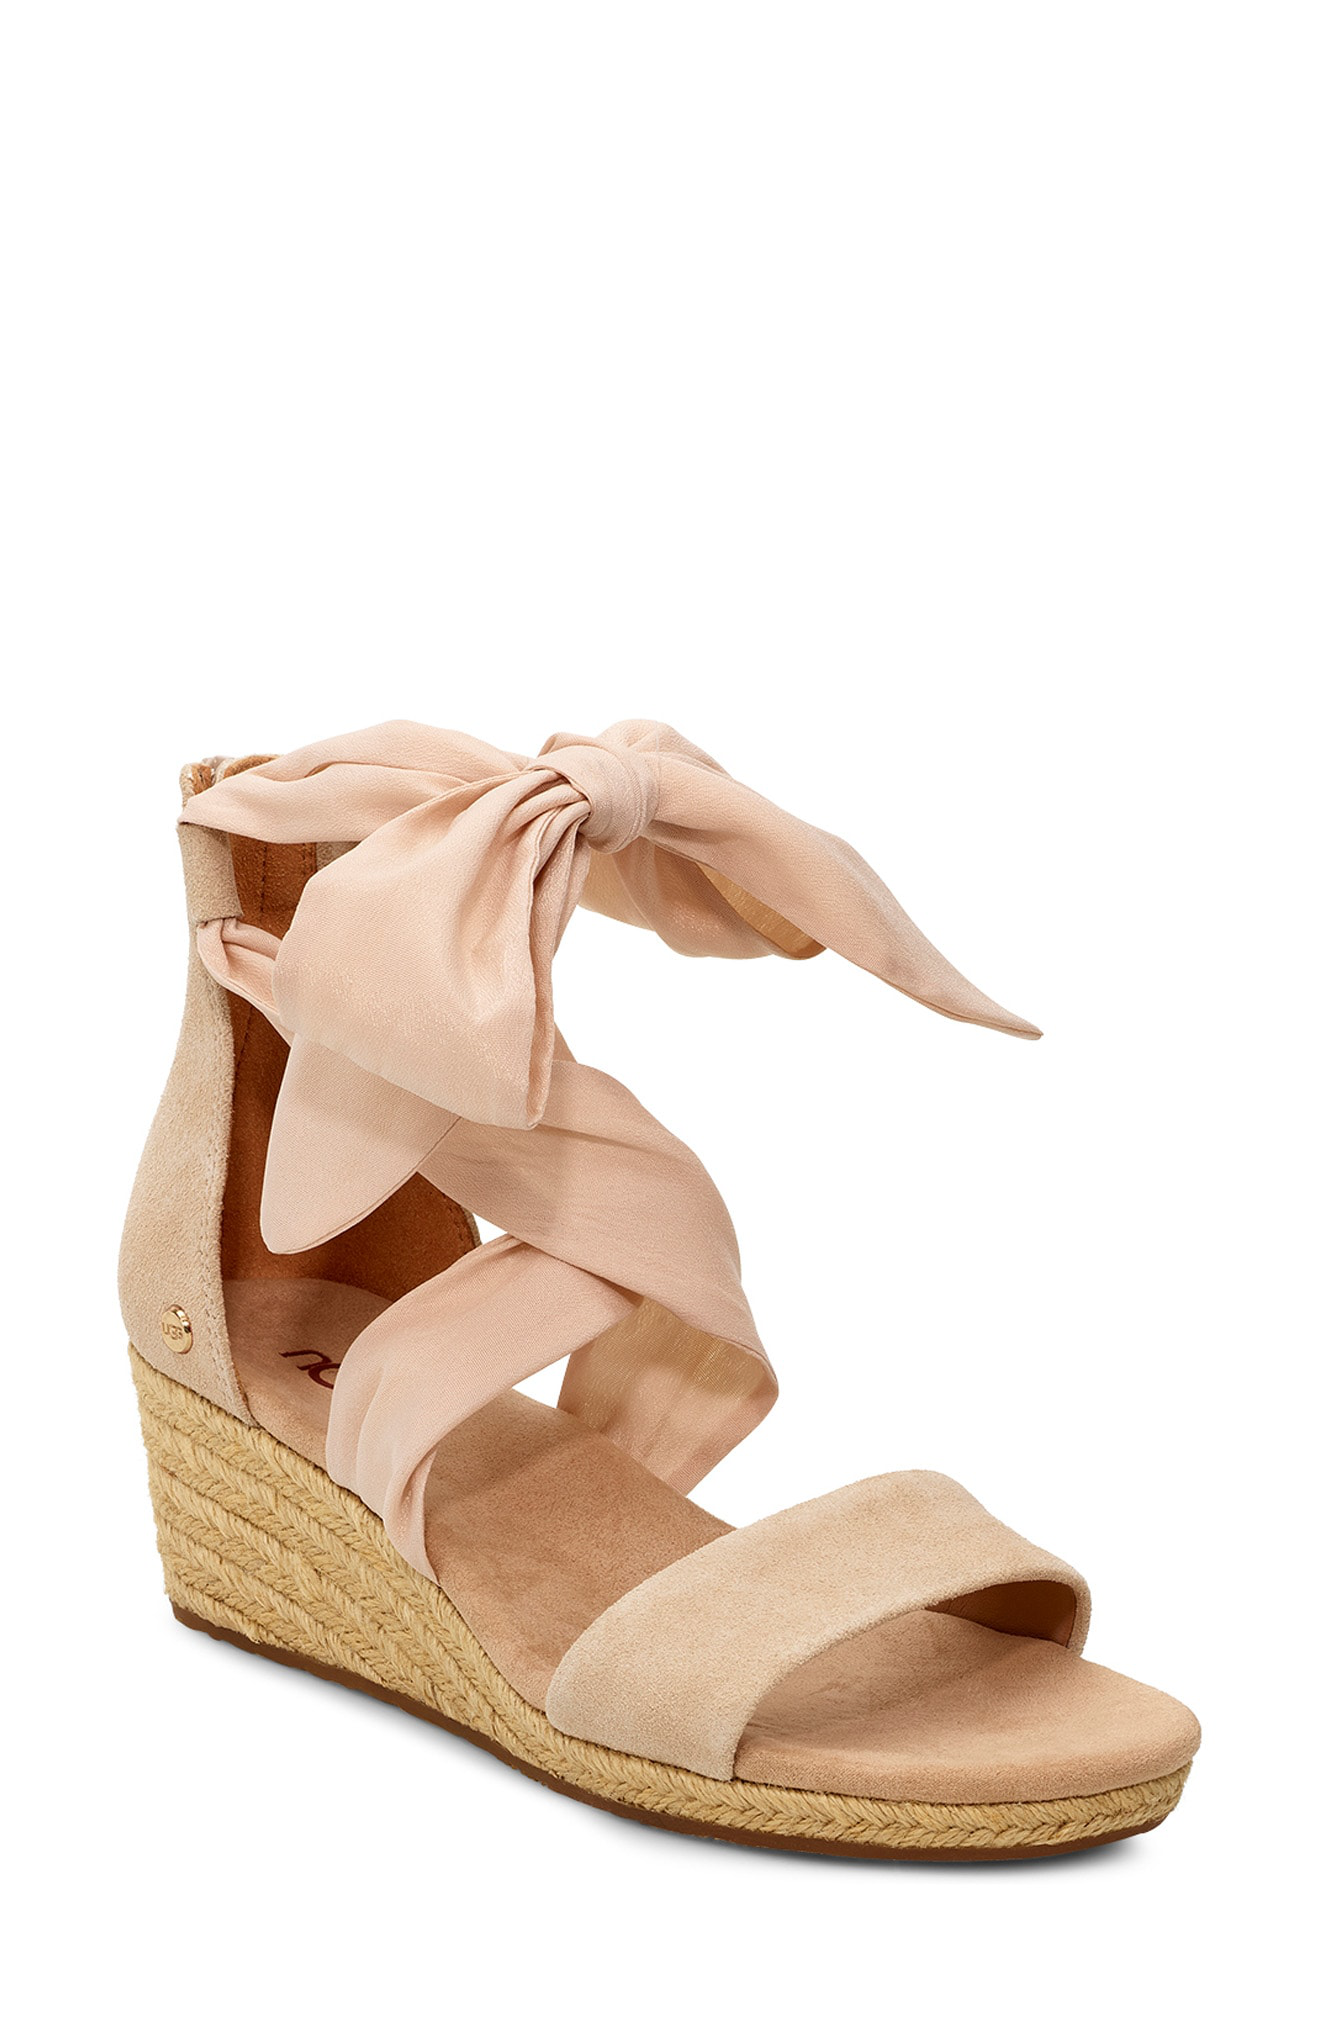 e6793bf40db Ugg Trina Ribbon Tie Wedge Sandal in Nude Leather